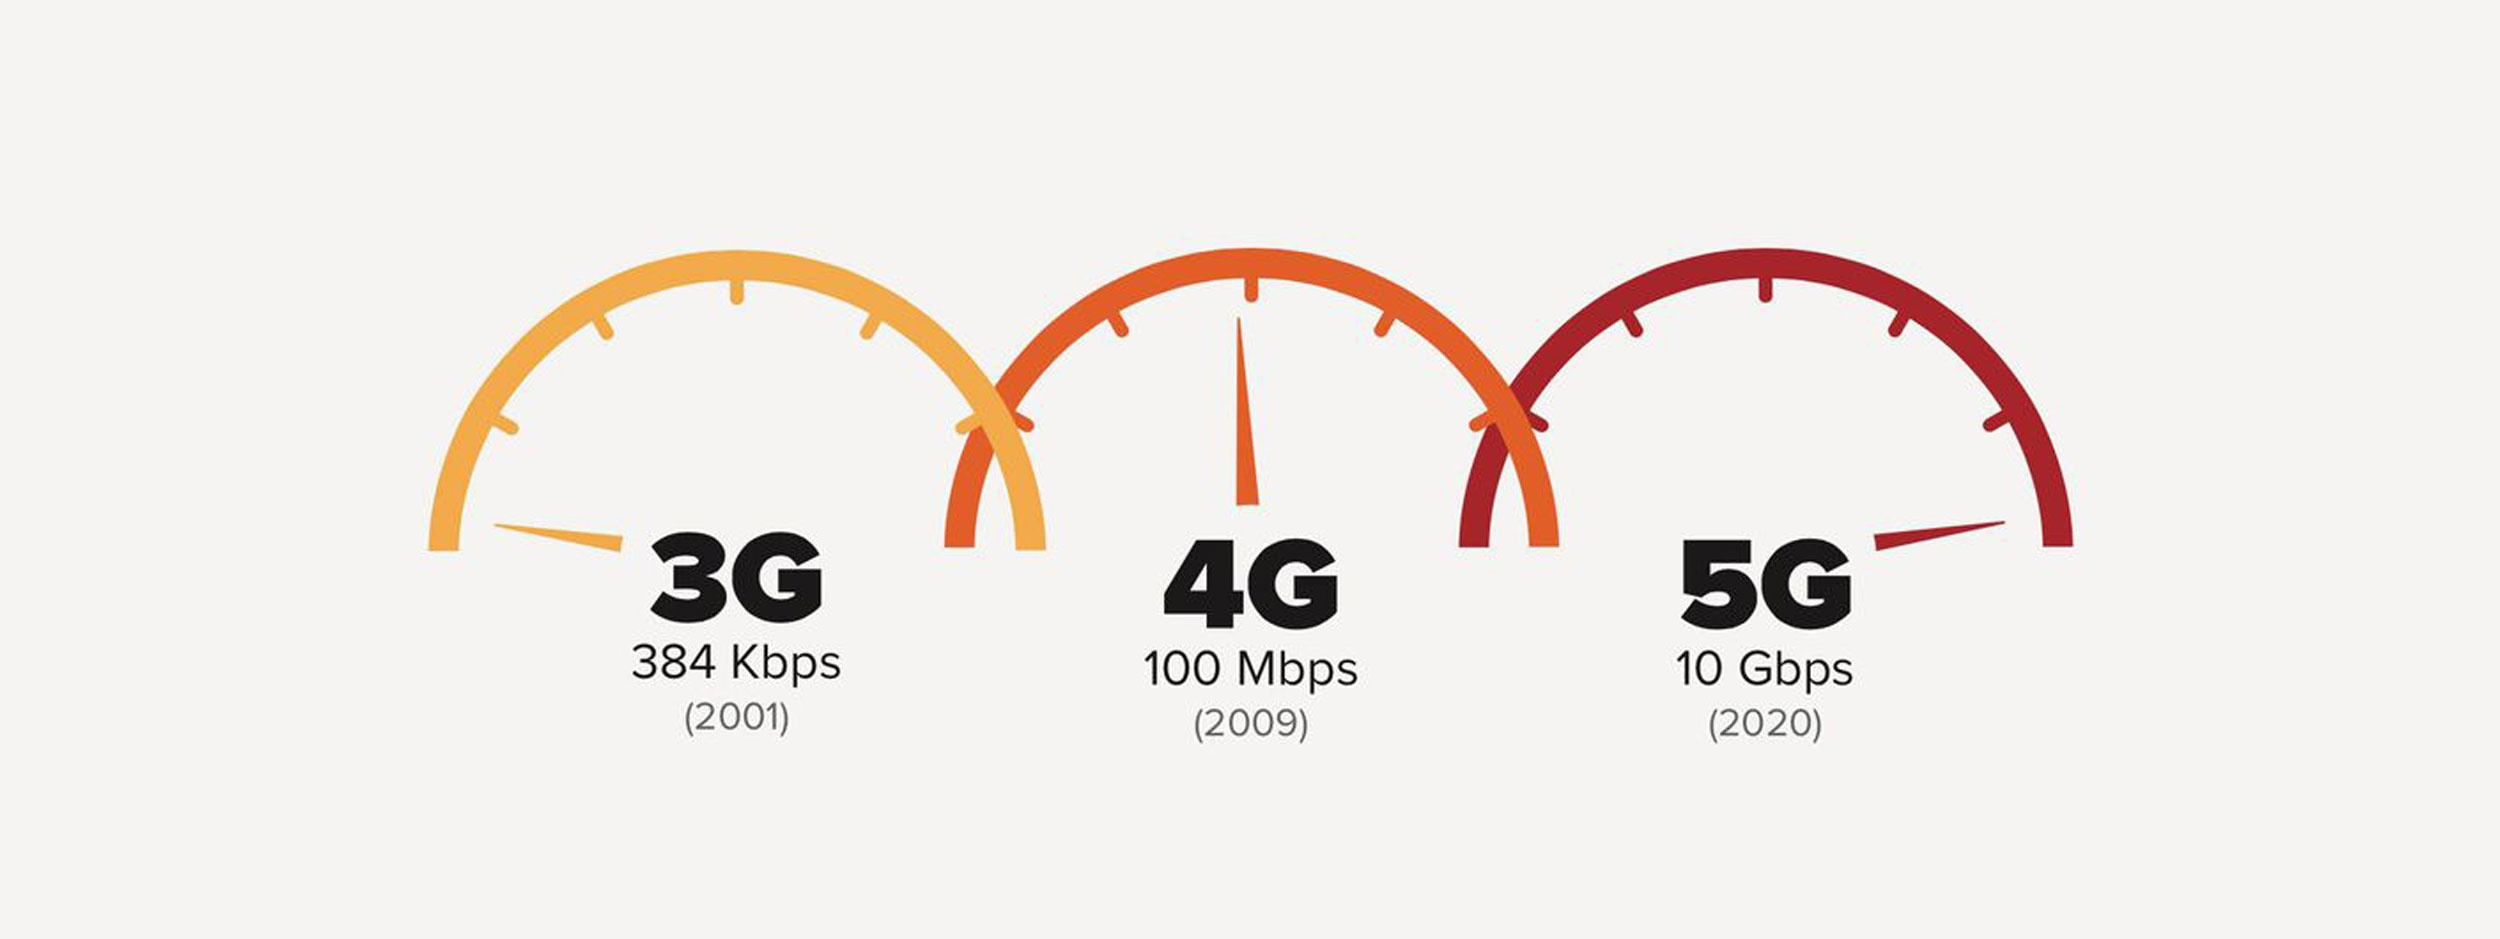 5g-network-expansion-telecom-construction.jpg